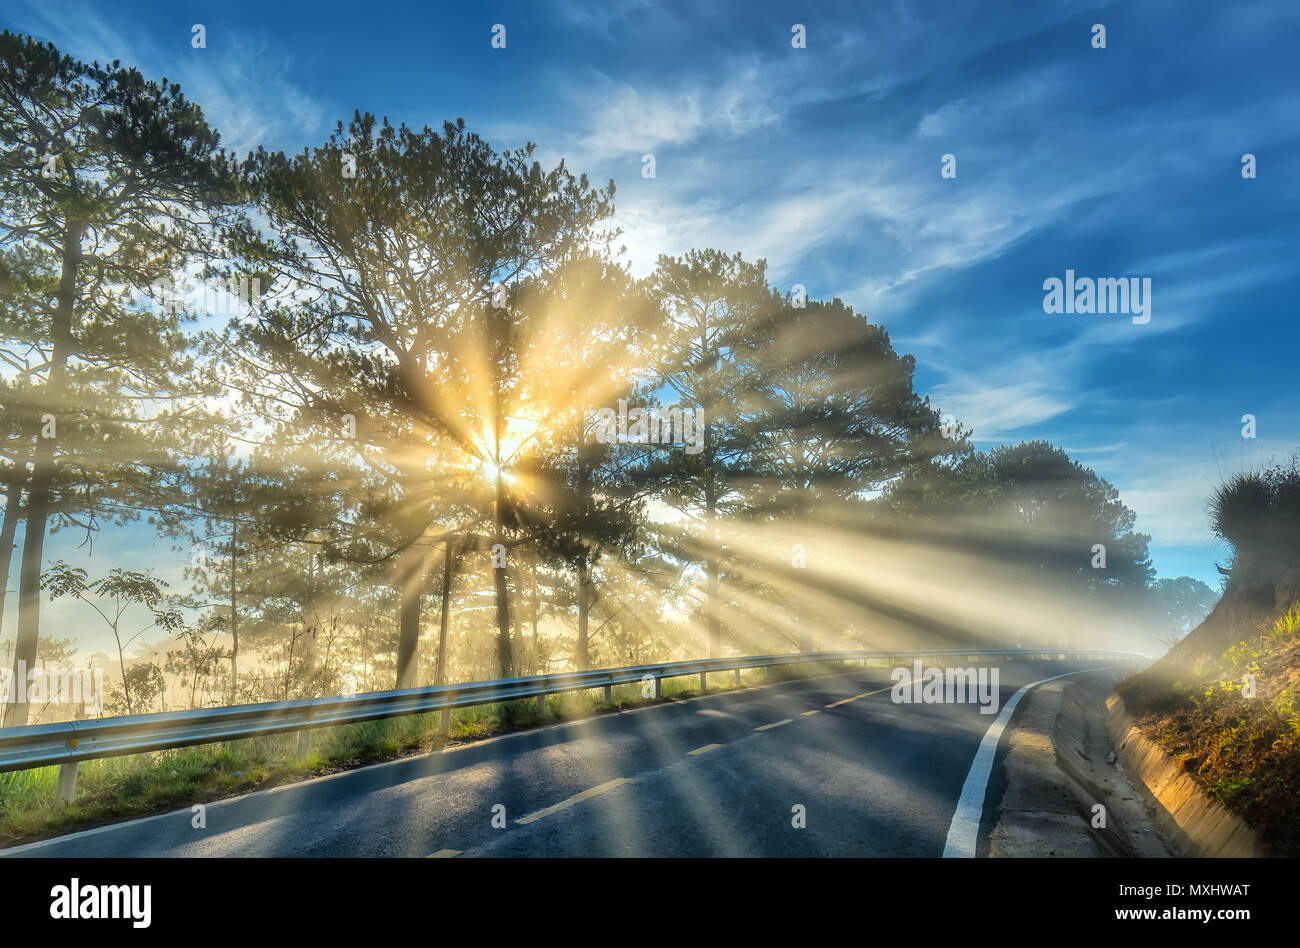 Sun rays shining down through the pine forest road foggy morning sun rays shining down through the pine forest road foggy morning shimmering ray beam shines beneath fanciful to greet the new day in the suburbs m4hsunfo